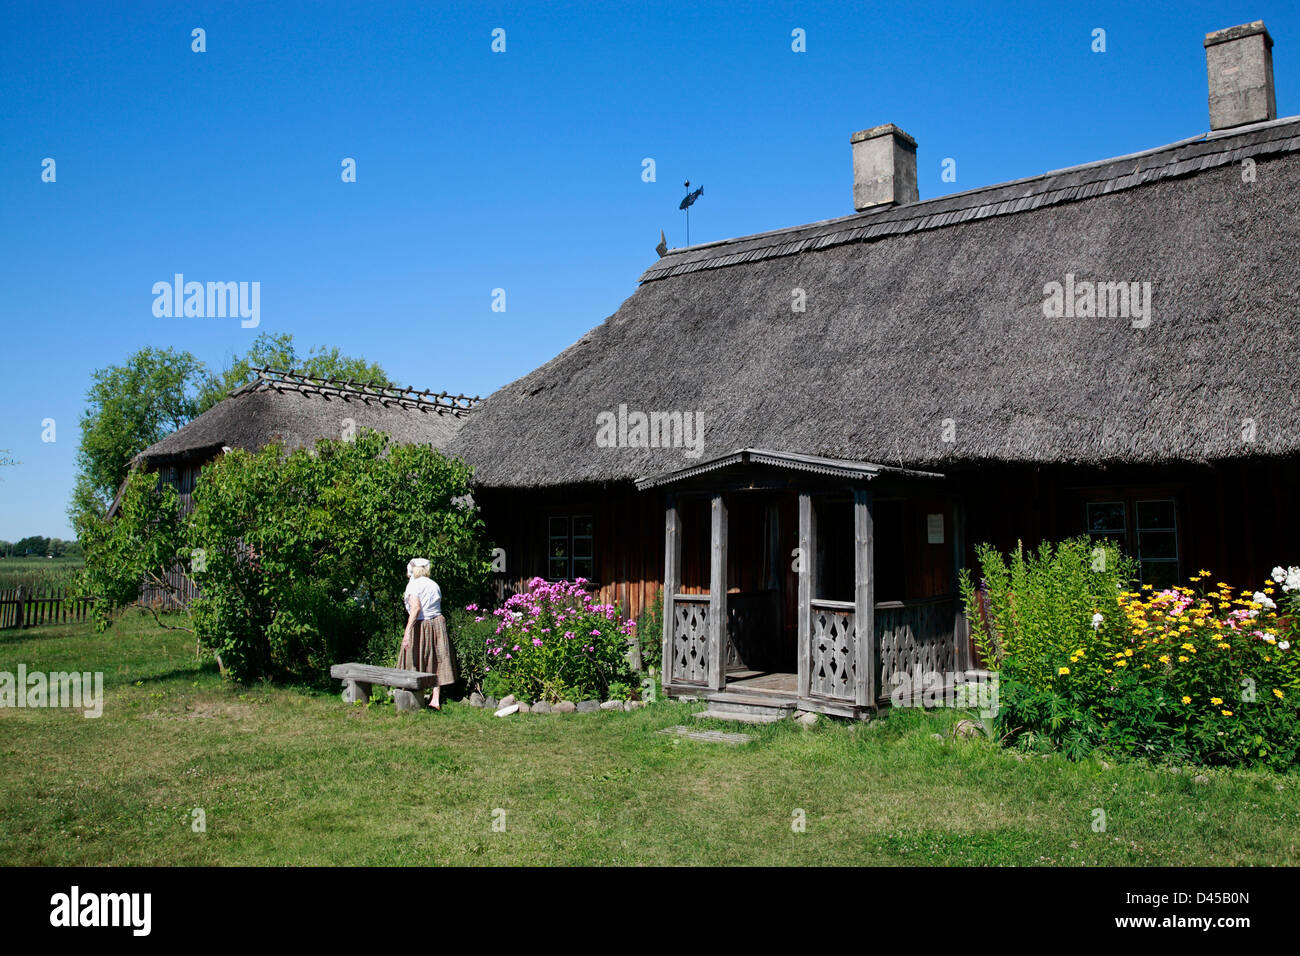 Thatched old Fisher-house at Latvian Ethnographic Open-air Museum, near Riga, Latvia - Stock Image